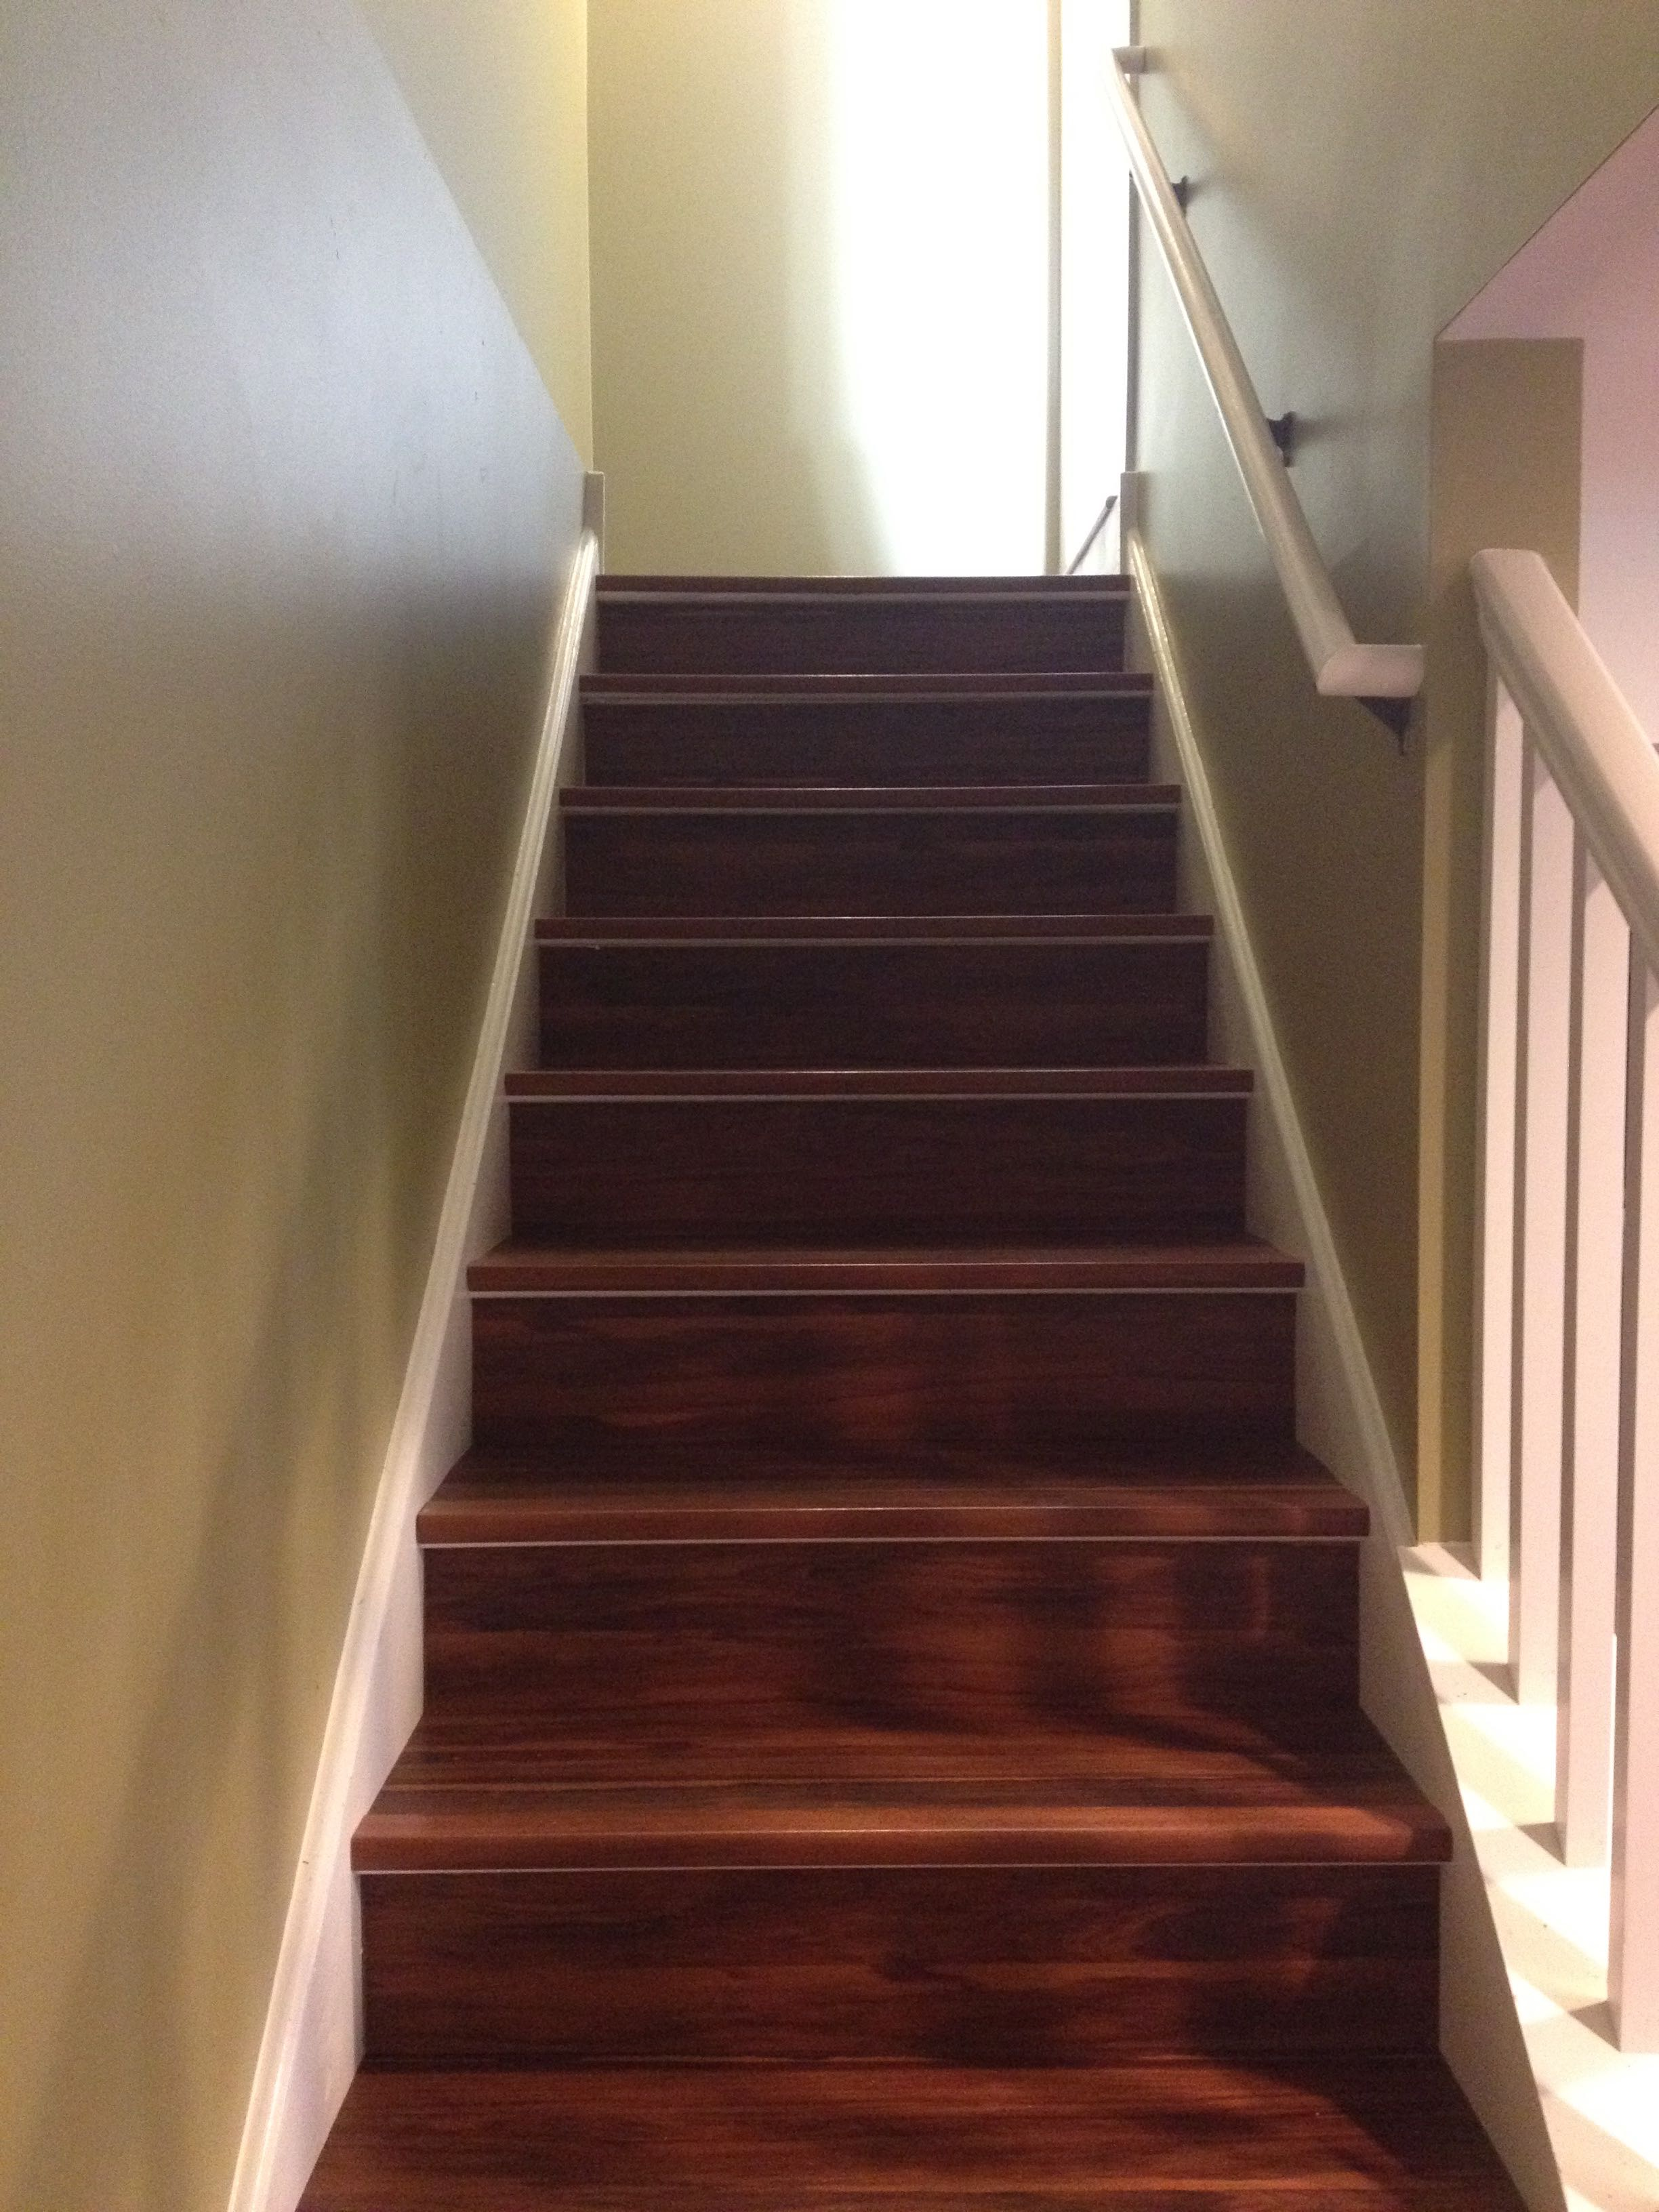 Basement Stairs Ideas: 6 Ideas For Finishing Your Basement Stairs September 2019